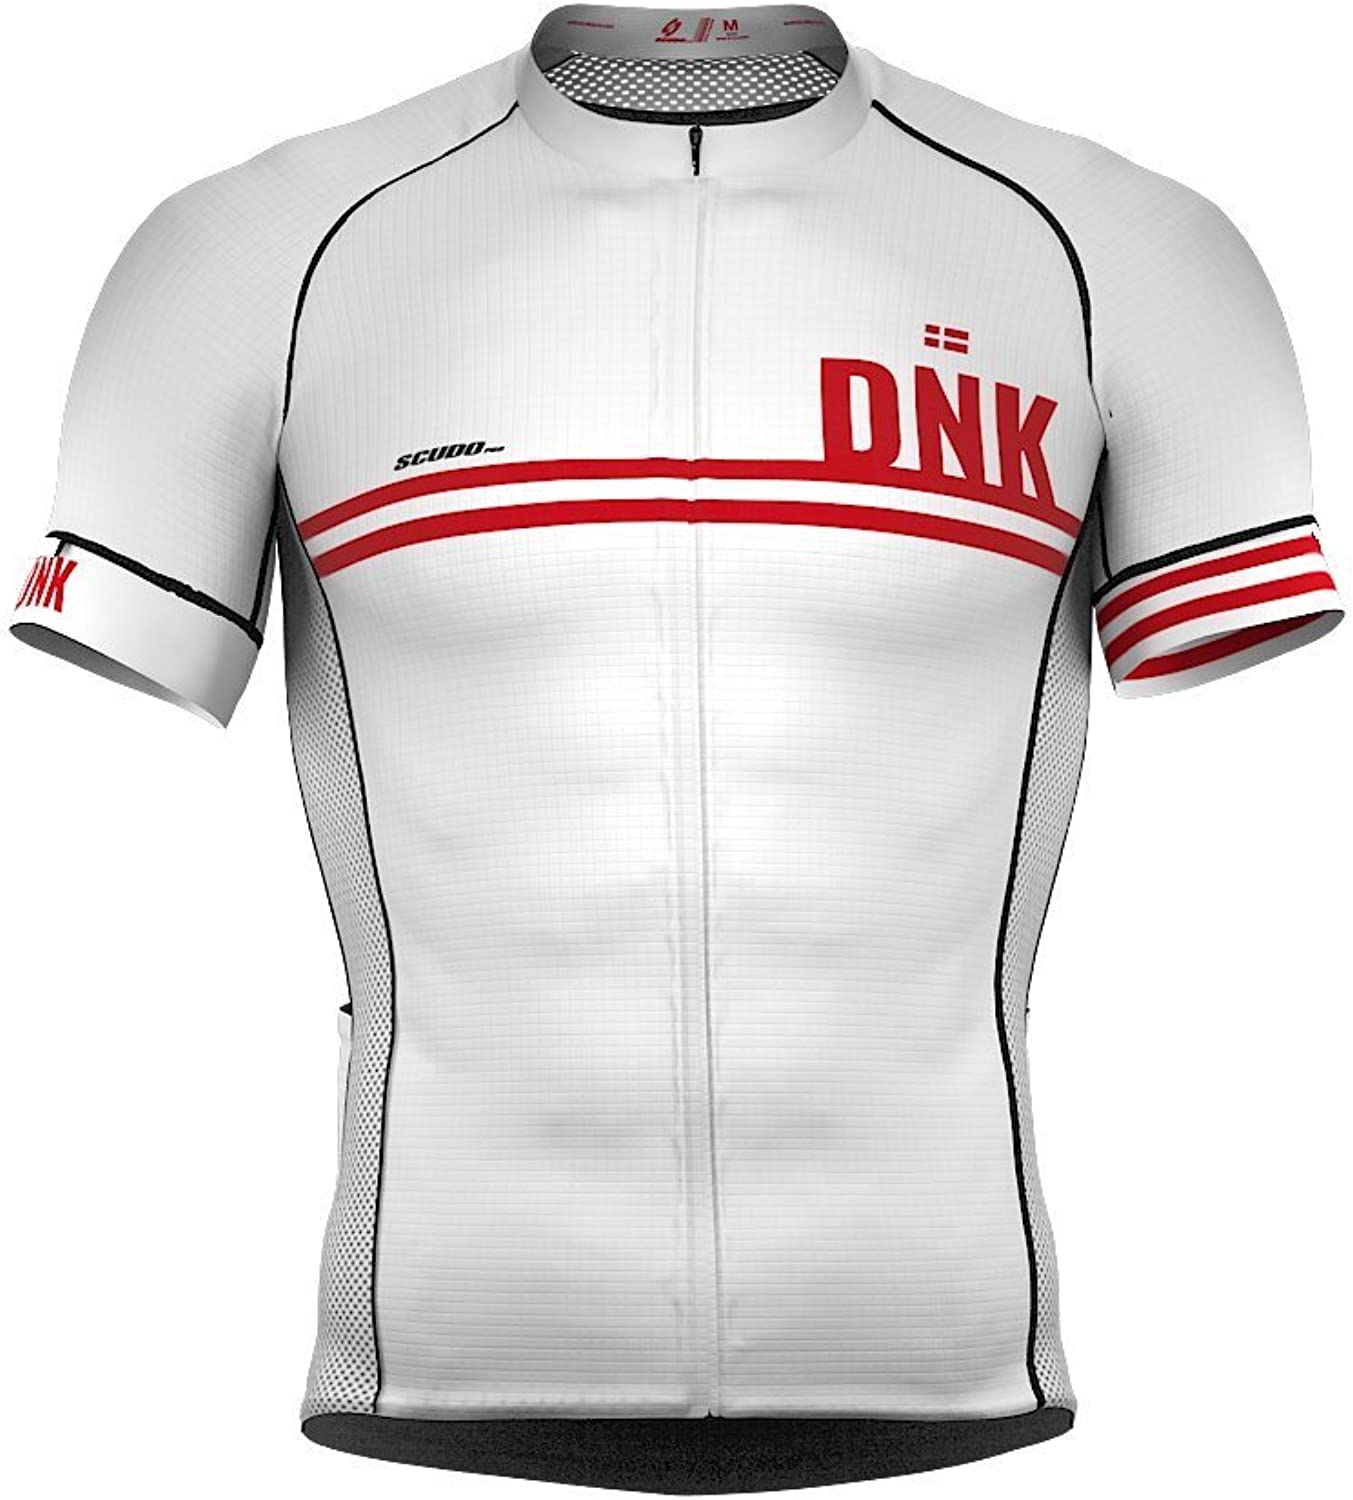 ScudoPro Denmark Code Short Sleeve Cycling PRO Jersey for Women